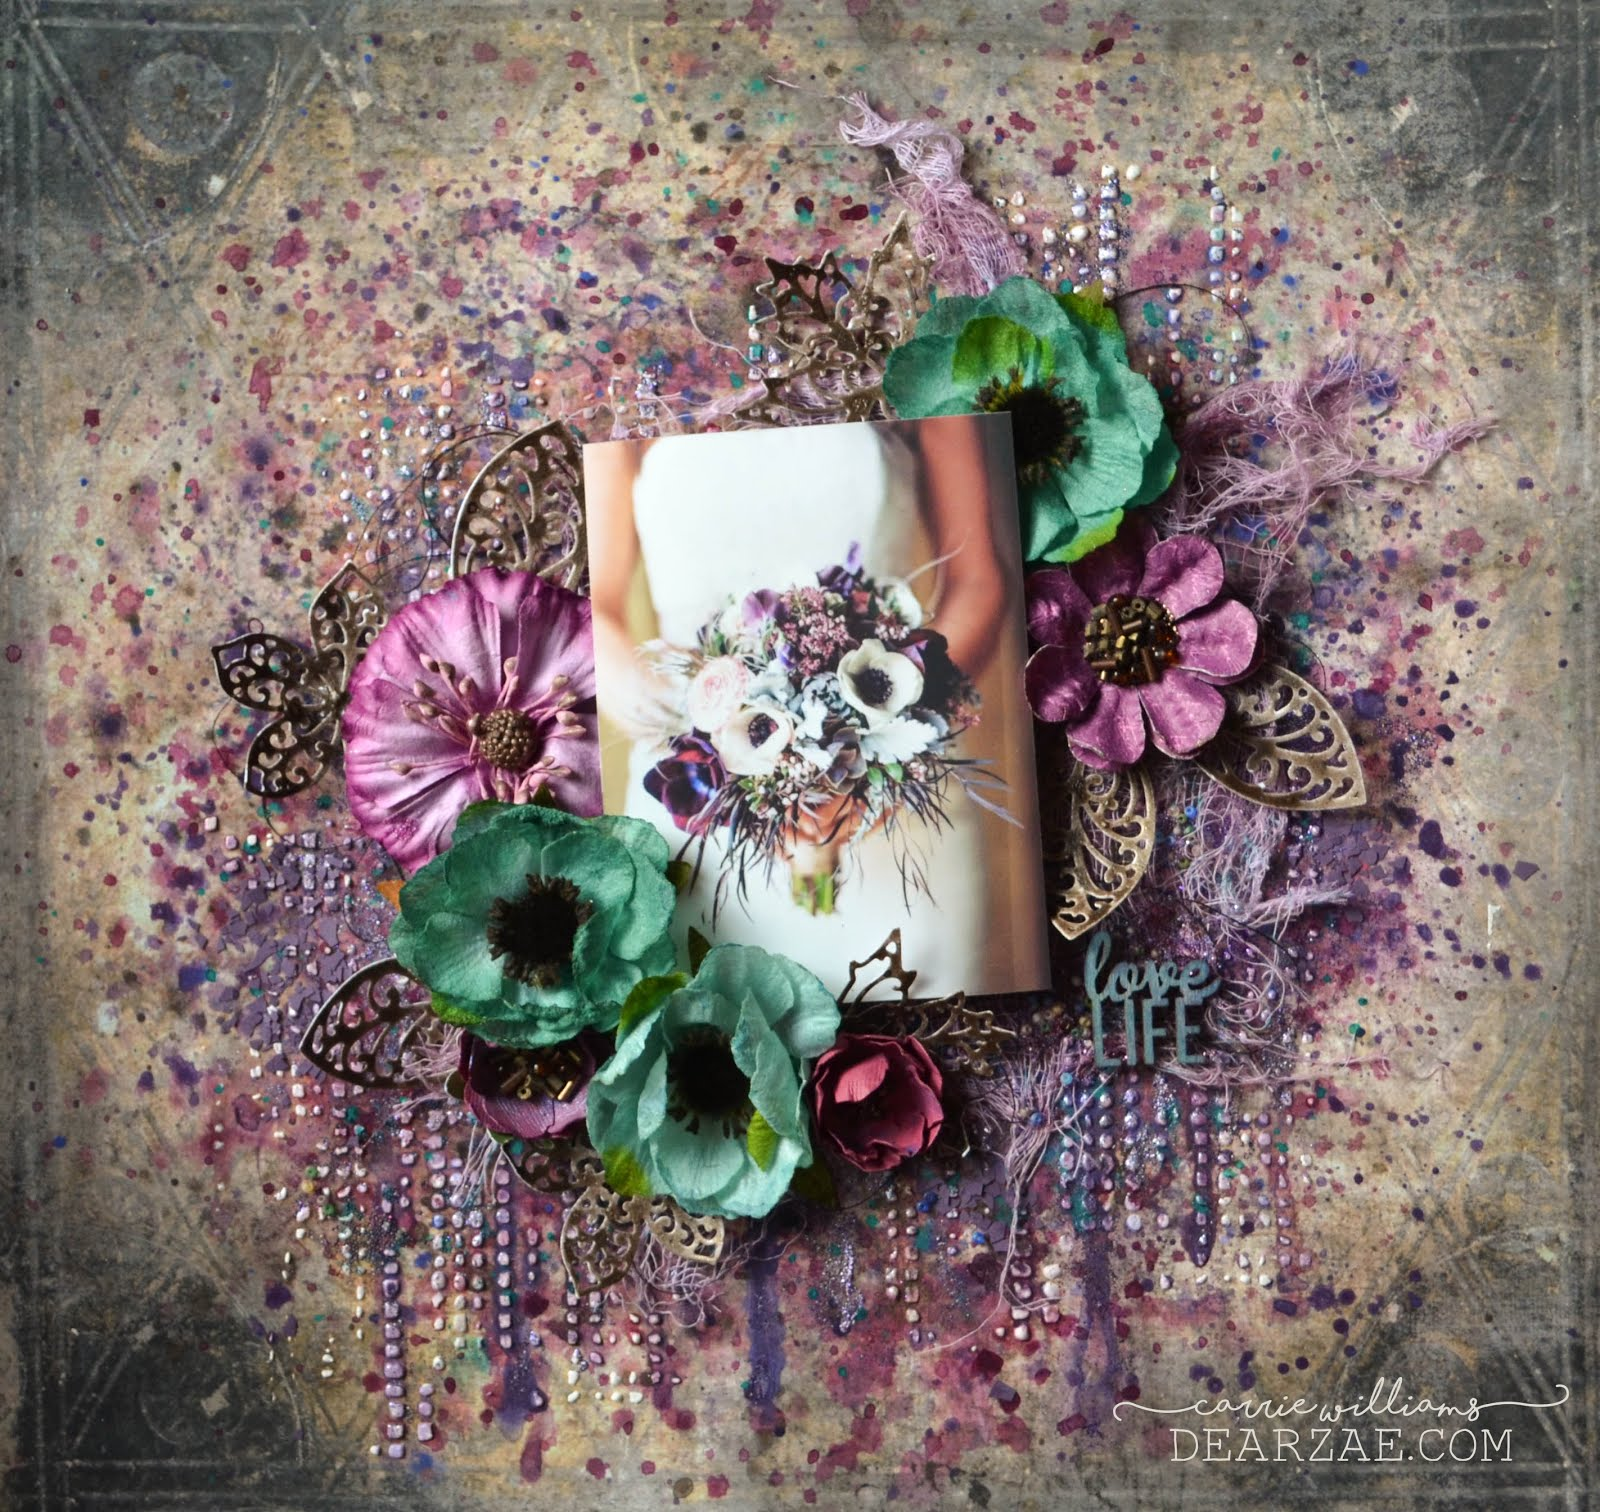 Mixed media scrapbook layout in purple and teal blue, Prima Timeless memories forever paper and prima moroccan dies, and Petaloo anemones against a background using texture paste and sprays